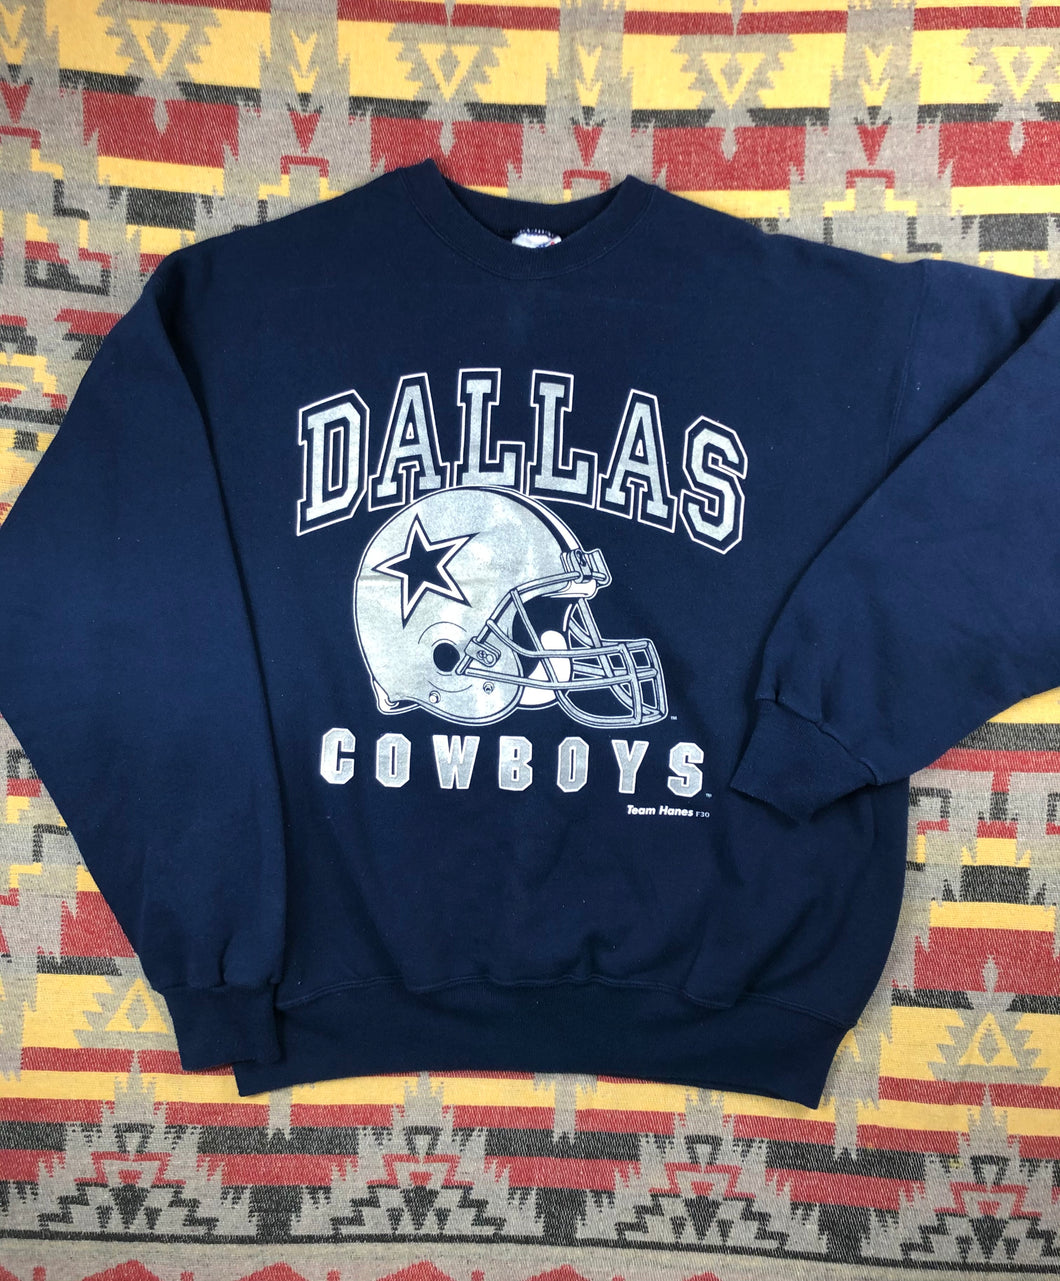 Vintage 90s Dallas Cowboys crew size XL